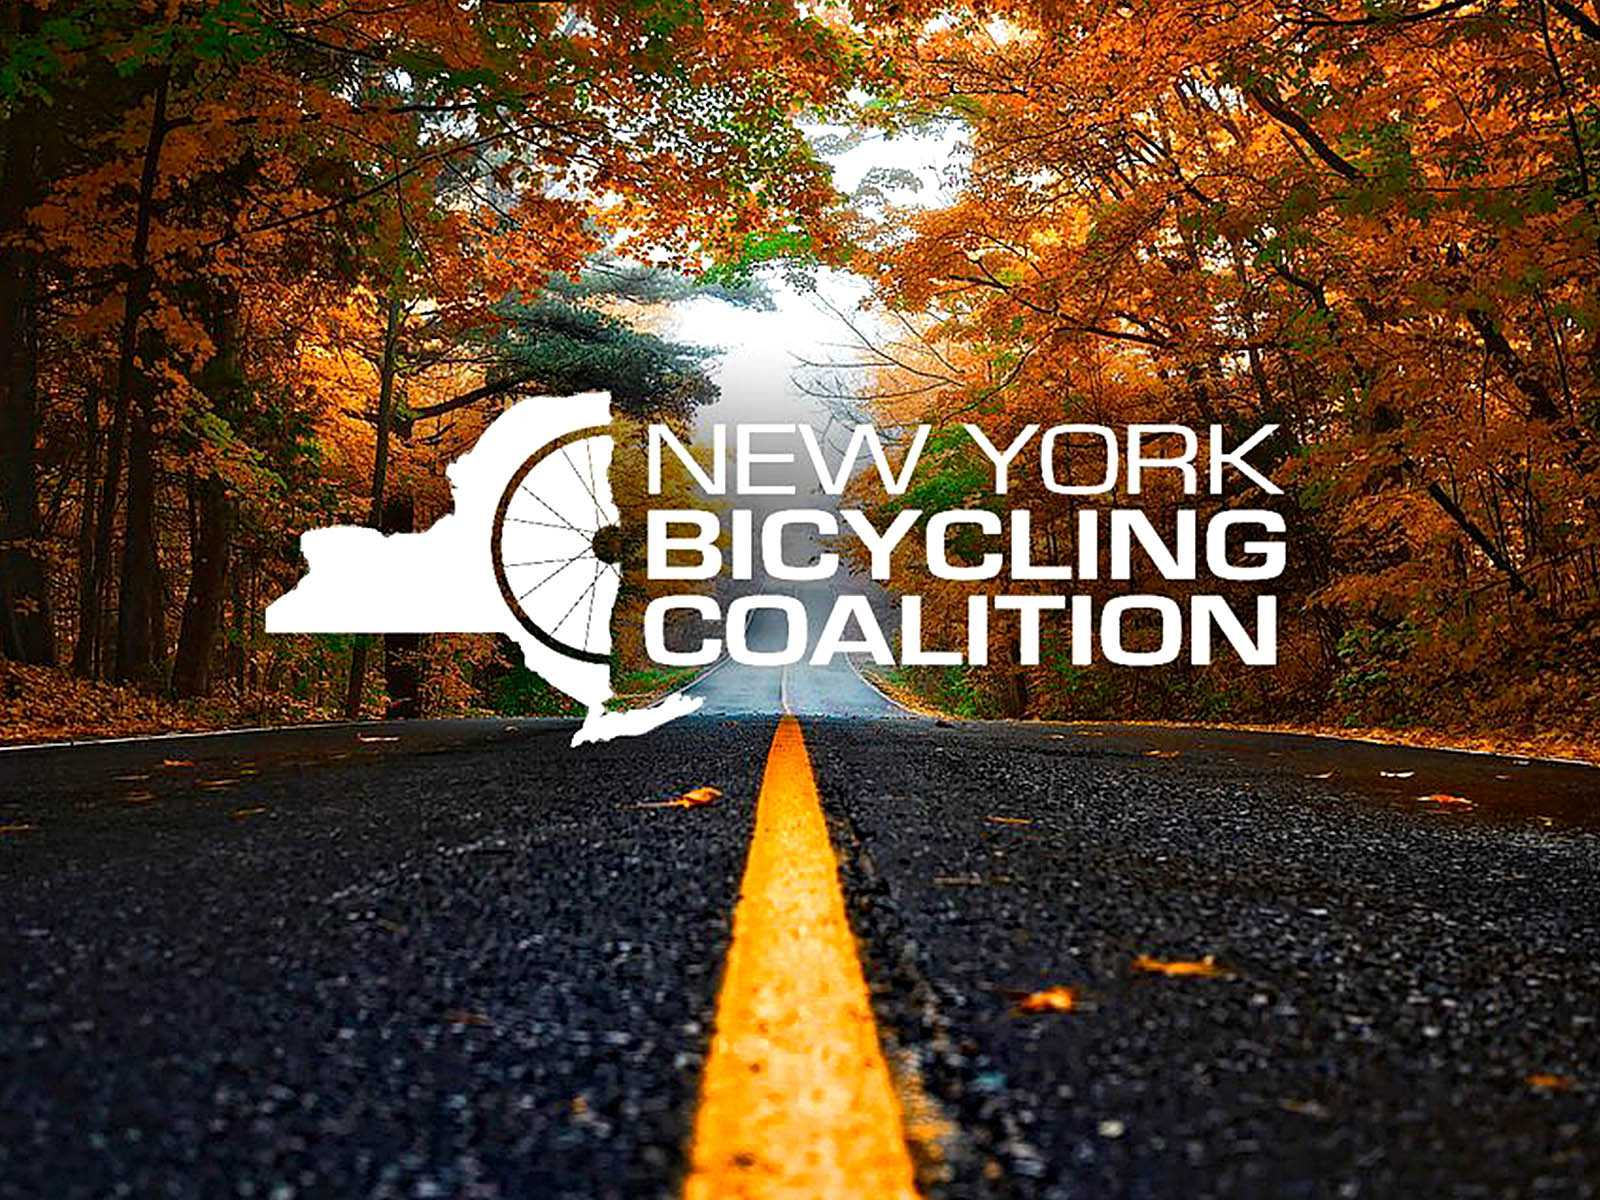 NY Bicycling Coalition logo